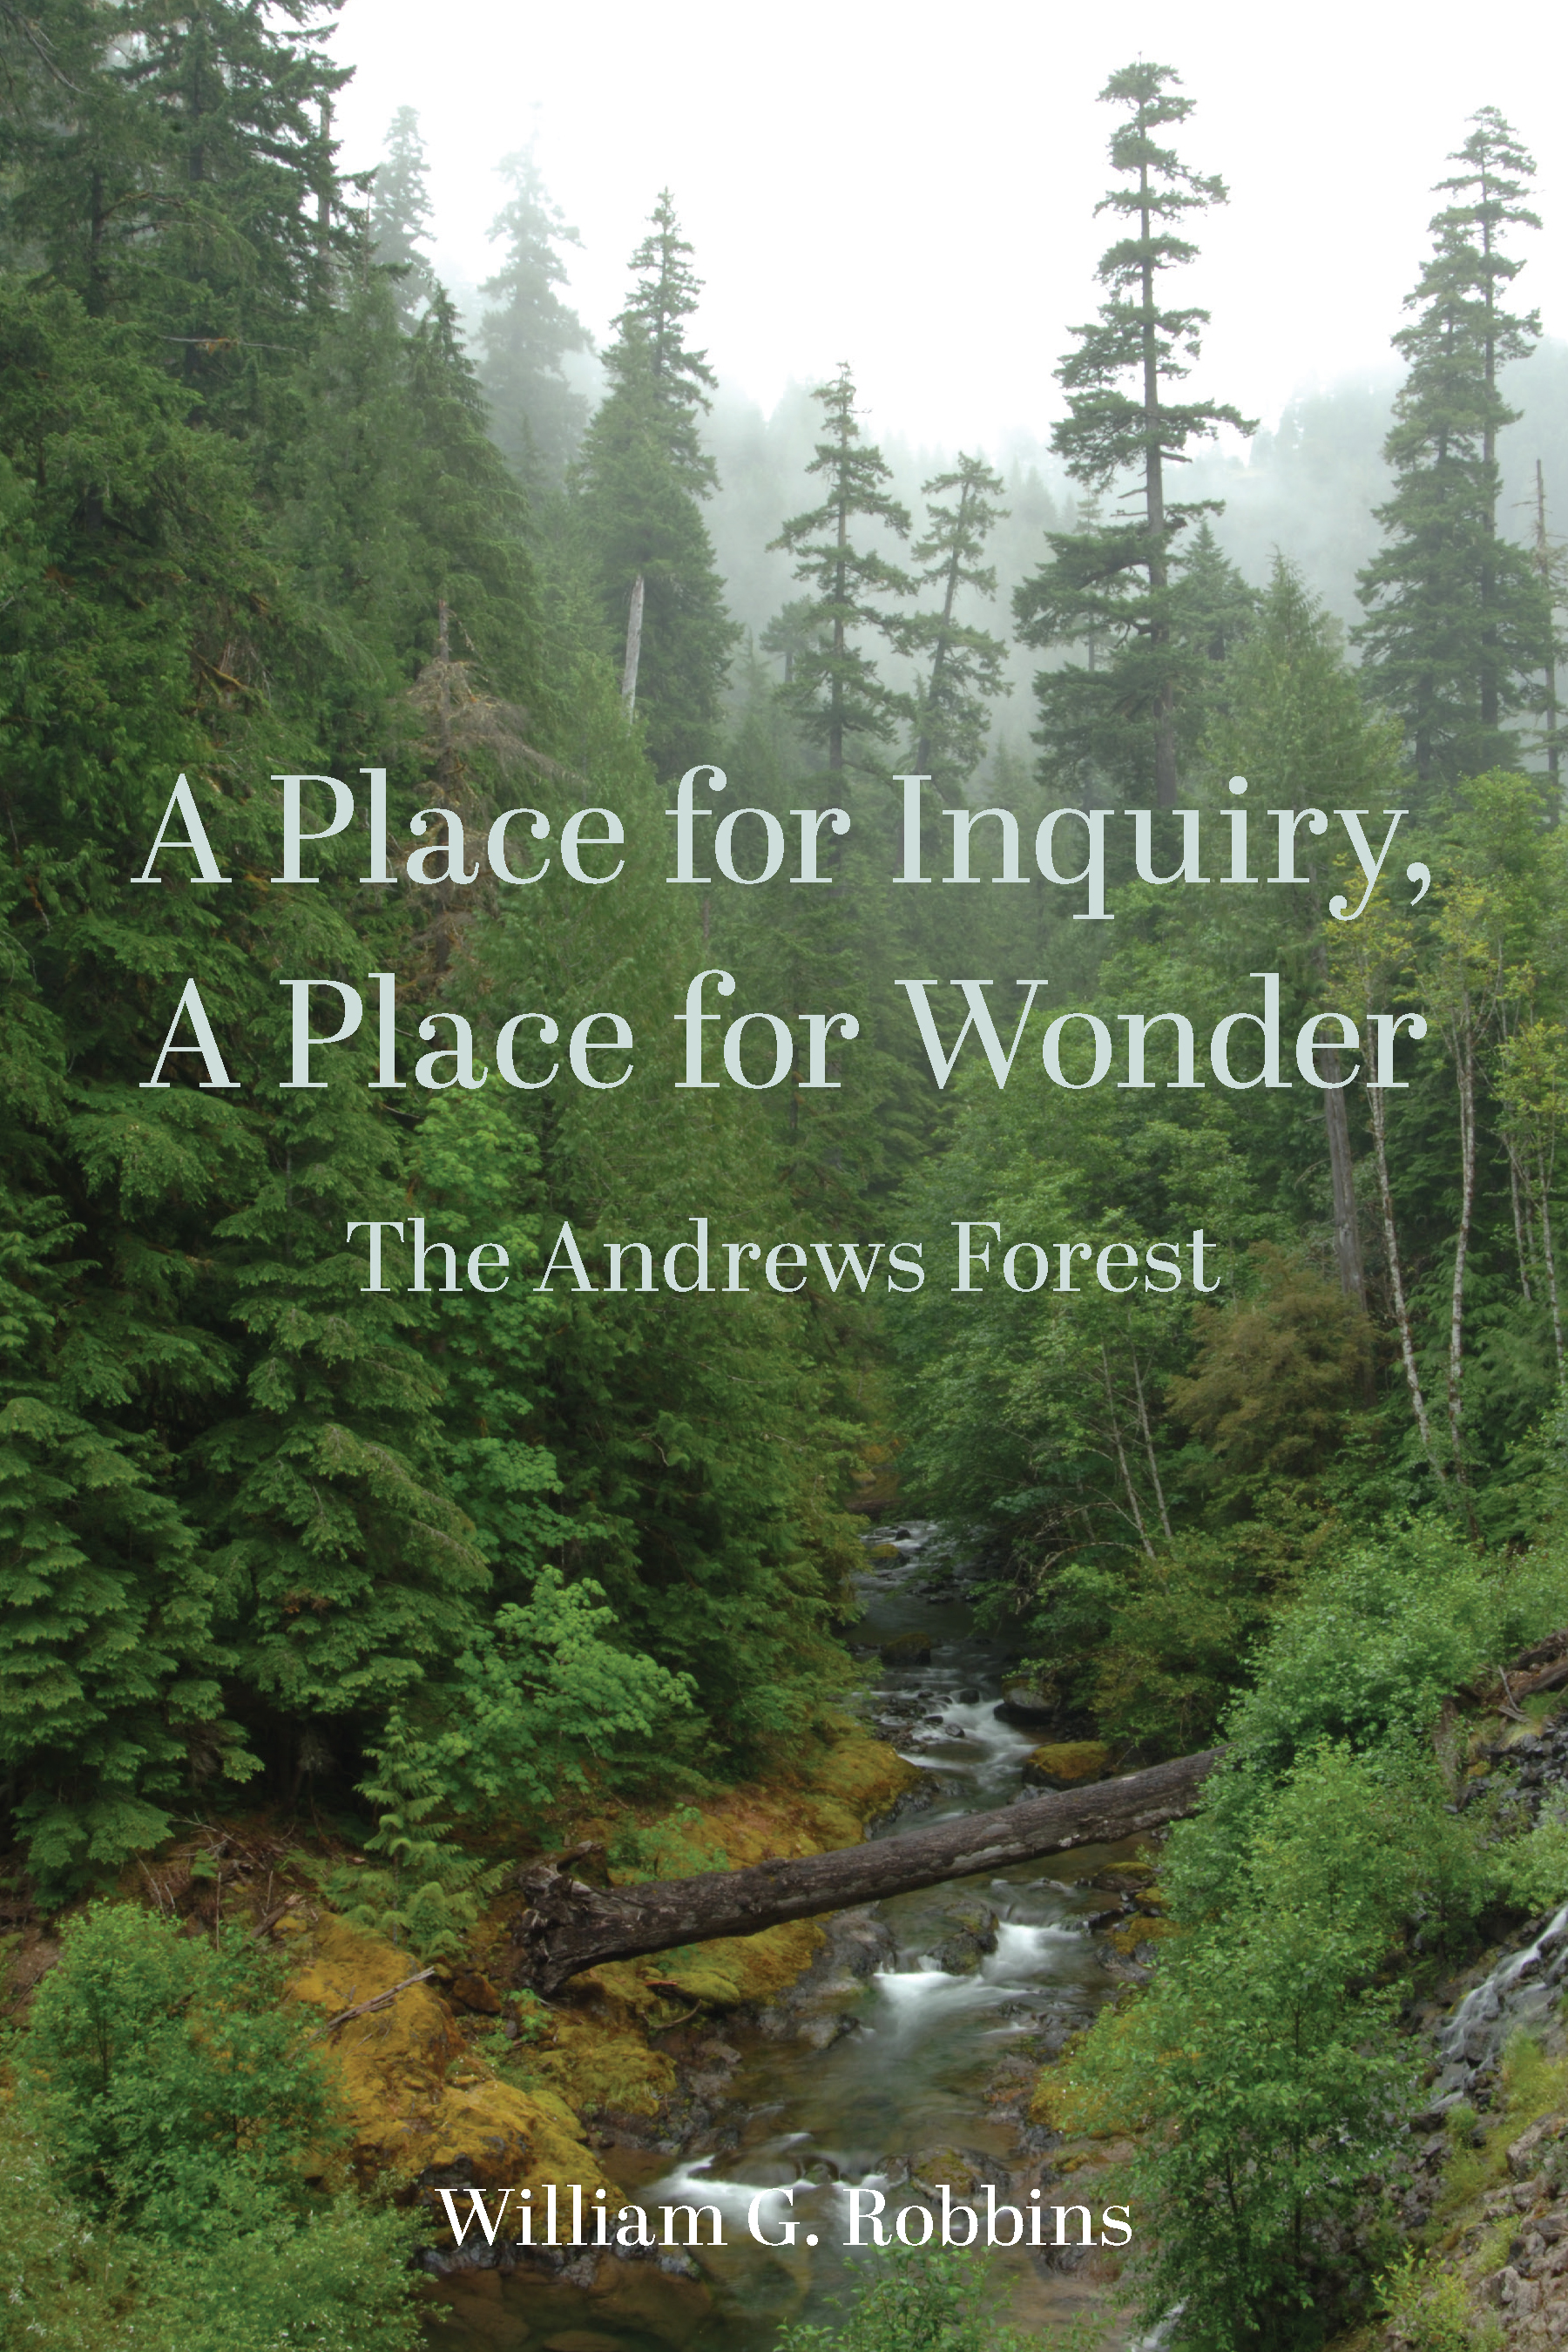 A Place for Inquiry